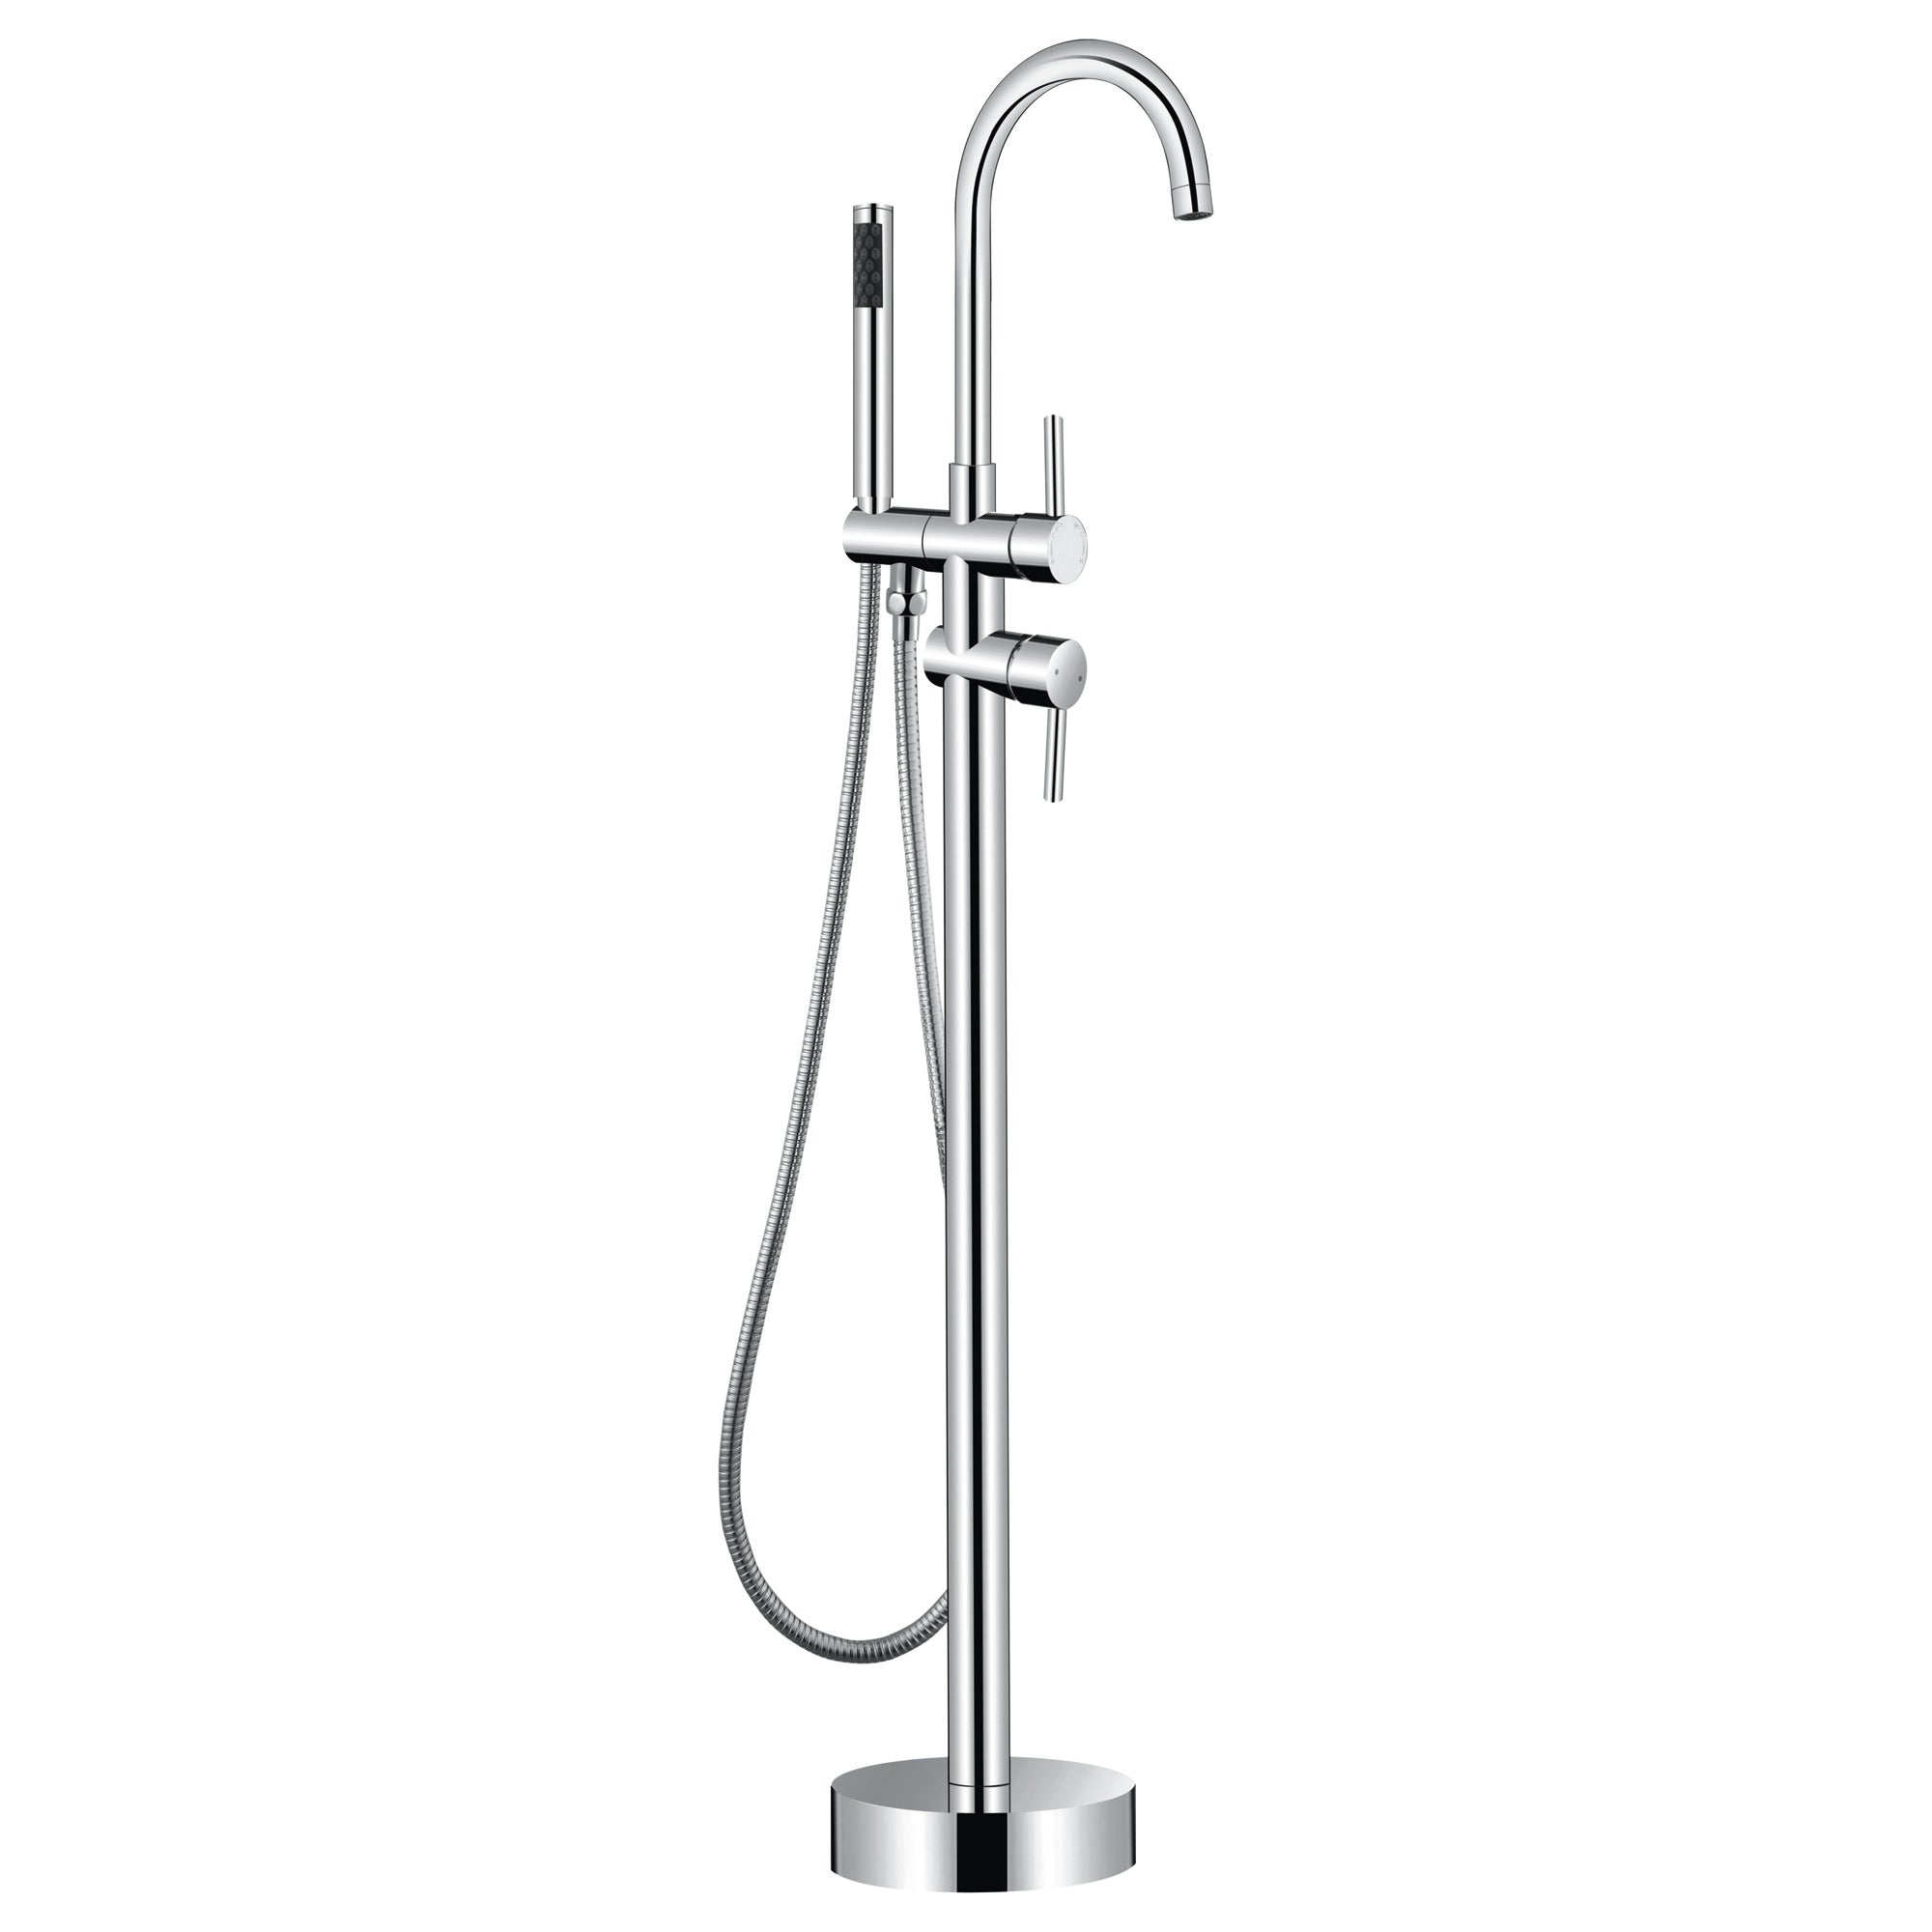 Brushed Nickel Free Standing Bathroom Shower Mixer Taps Floor Mounted Bathtub Shower Faucets withSingle Hand Sprayer